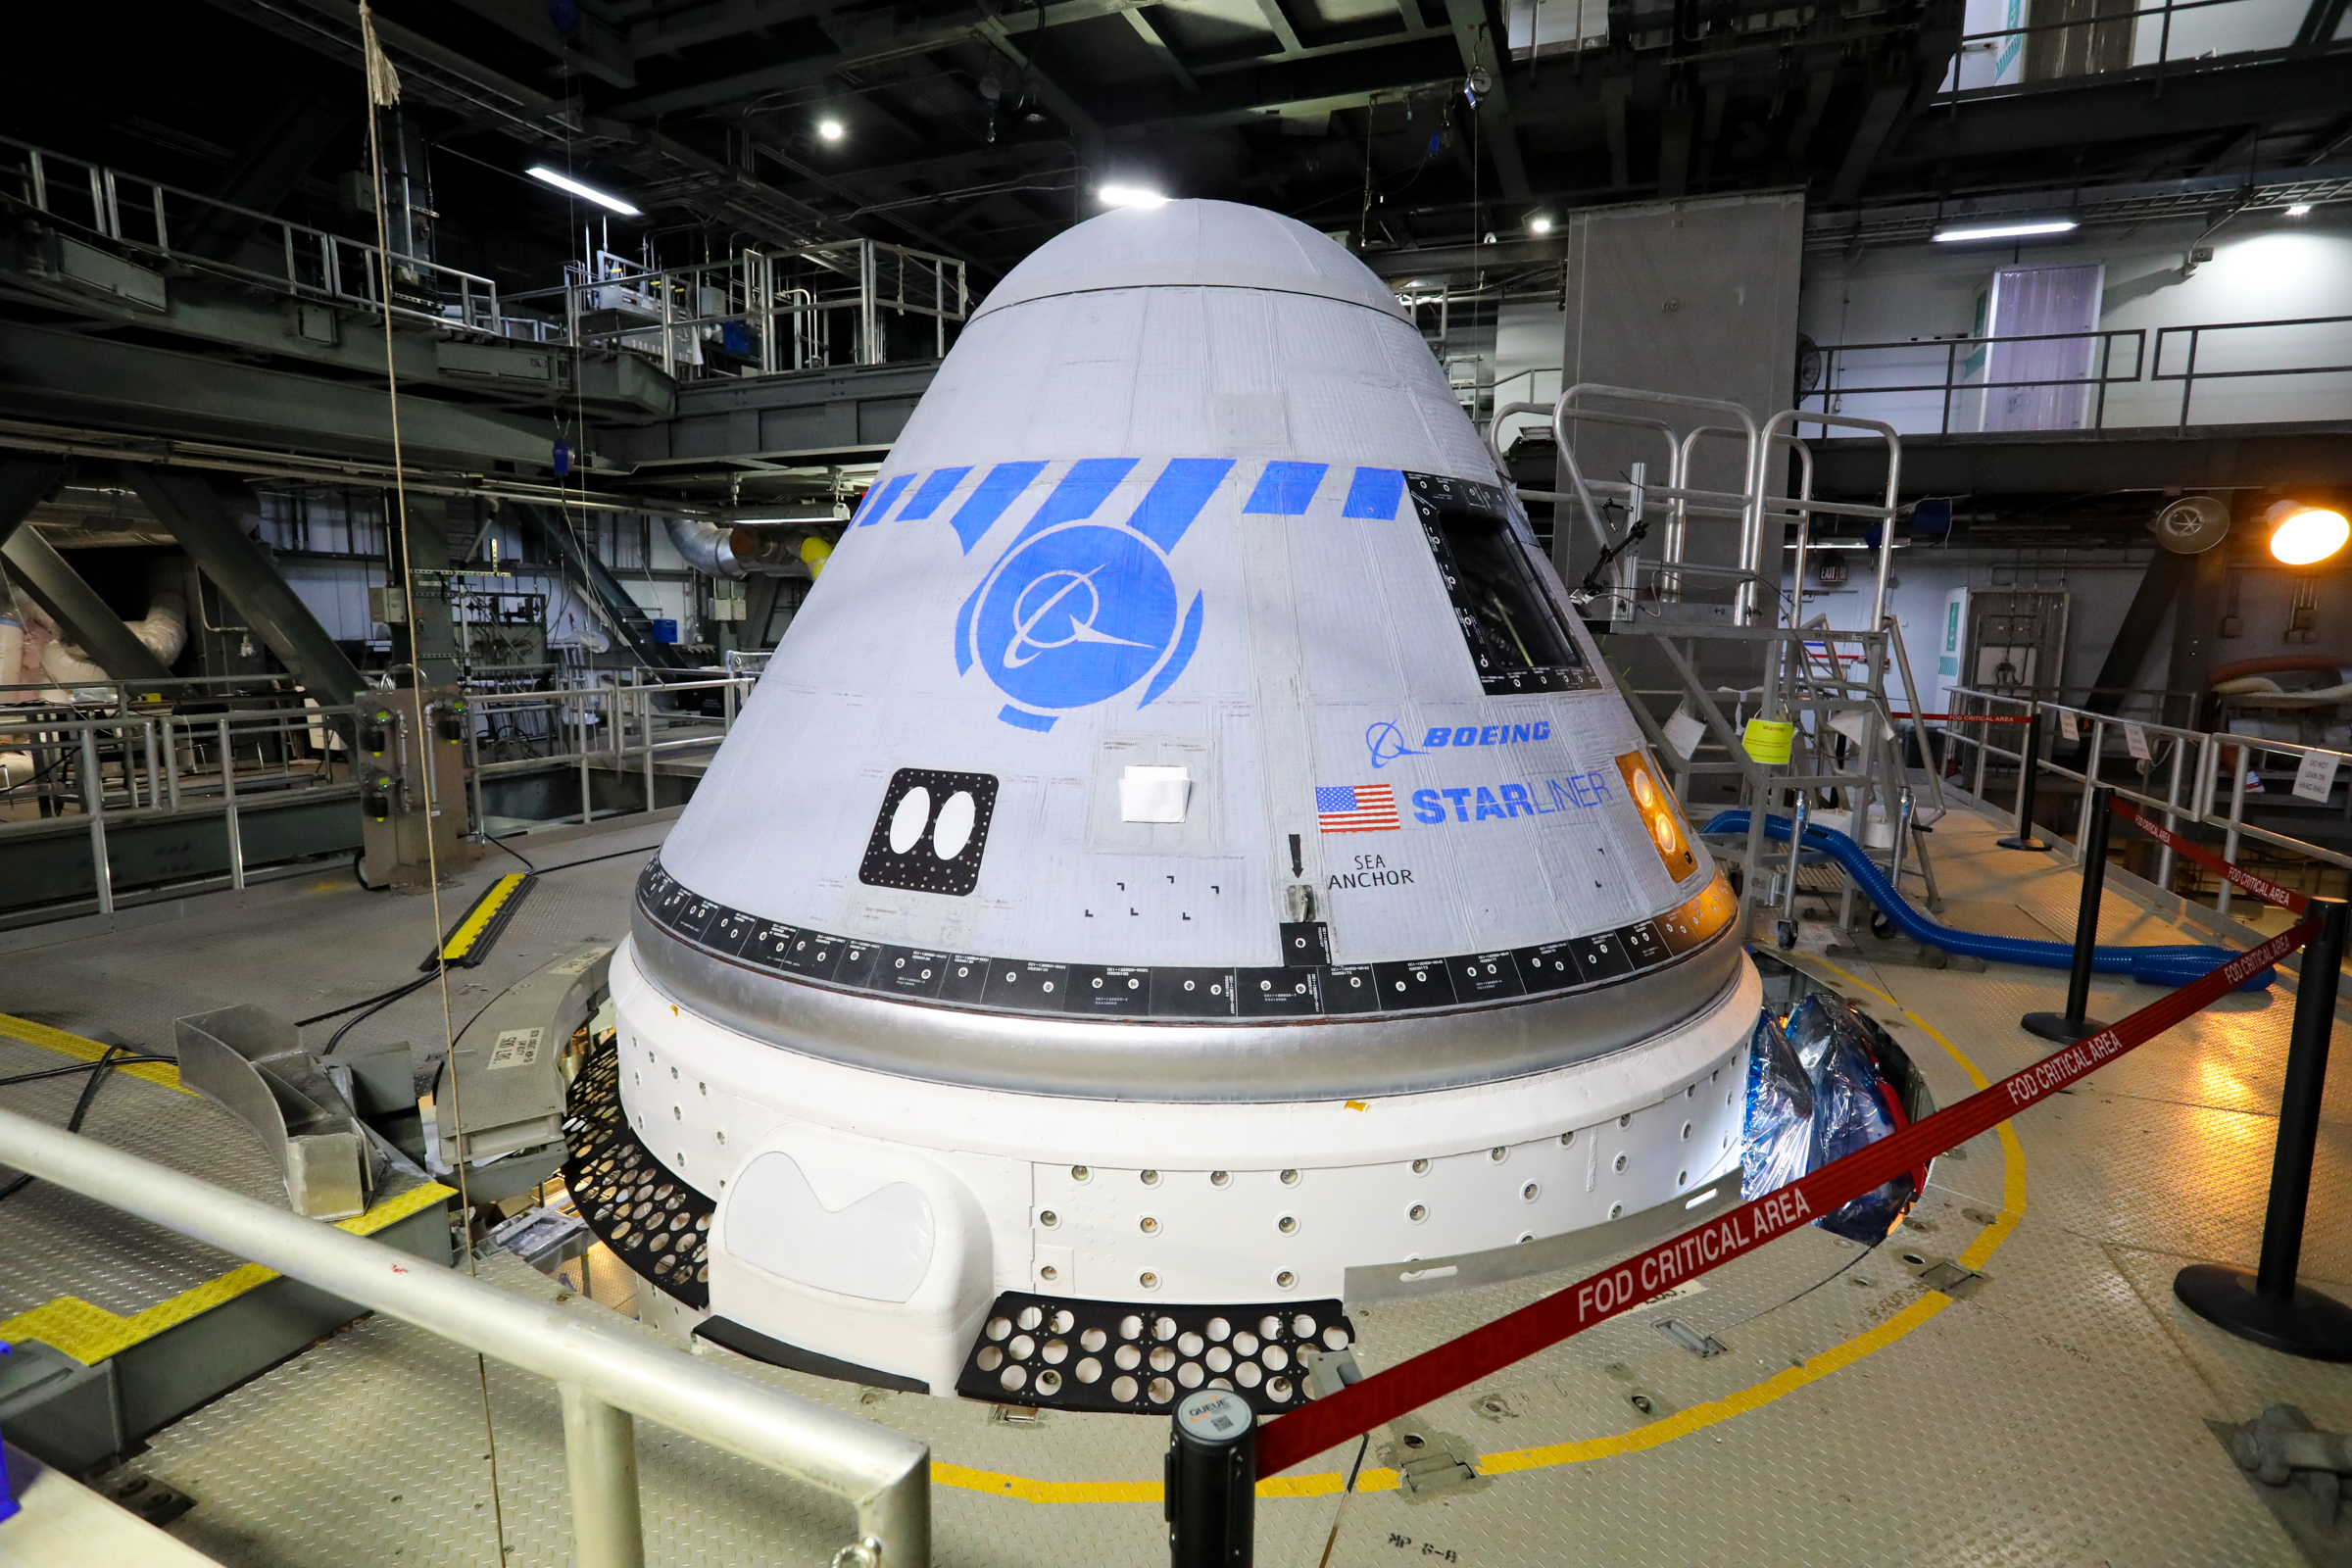 Boeing's CST-100 Starliner spacecraft is in view in the United Launch Alliance Vertical Integration Facility at Space Launch Complex 41 on Aug. 9, 2021.